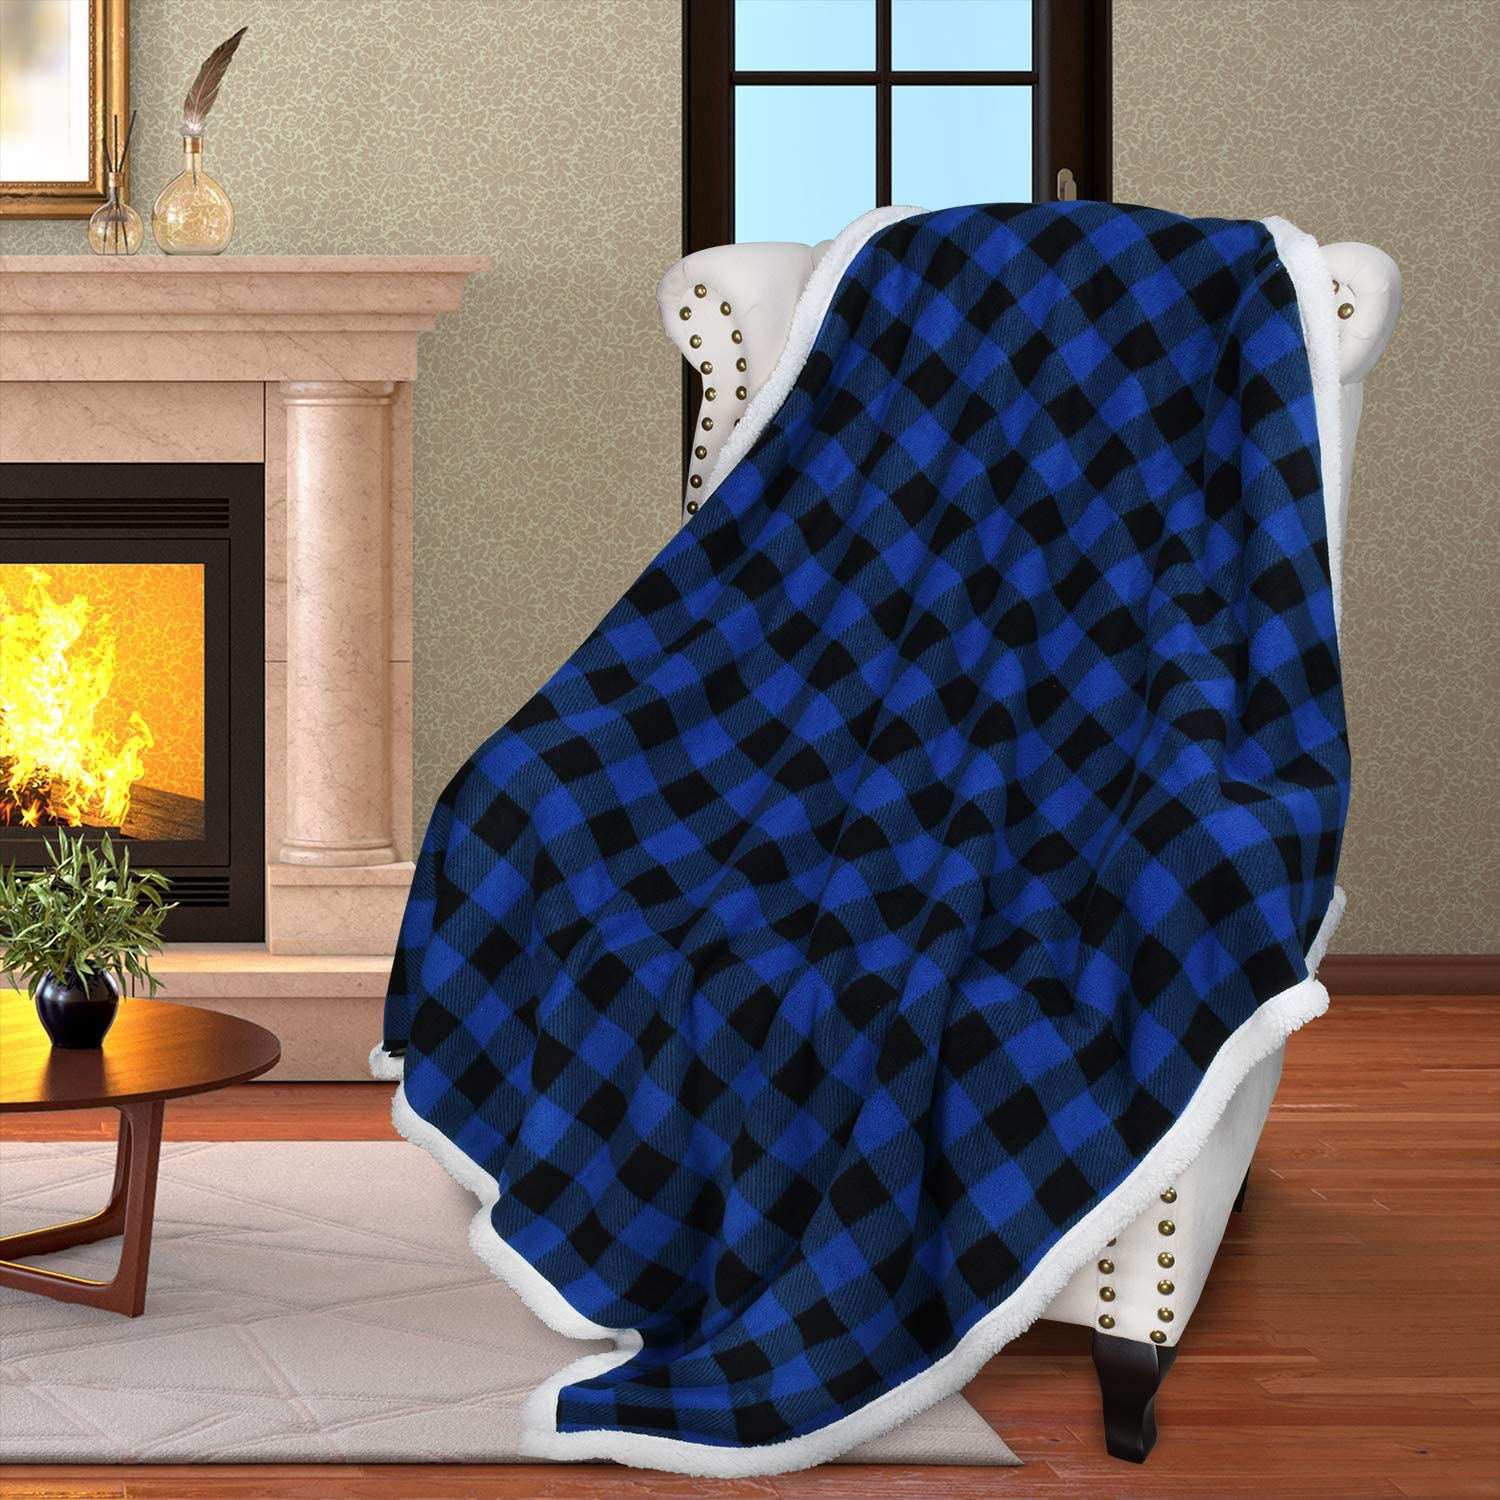 Catalonia TV Blanket Couch 60x50 Snuggle Warm Comfy